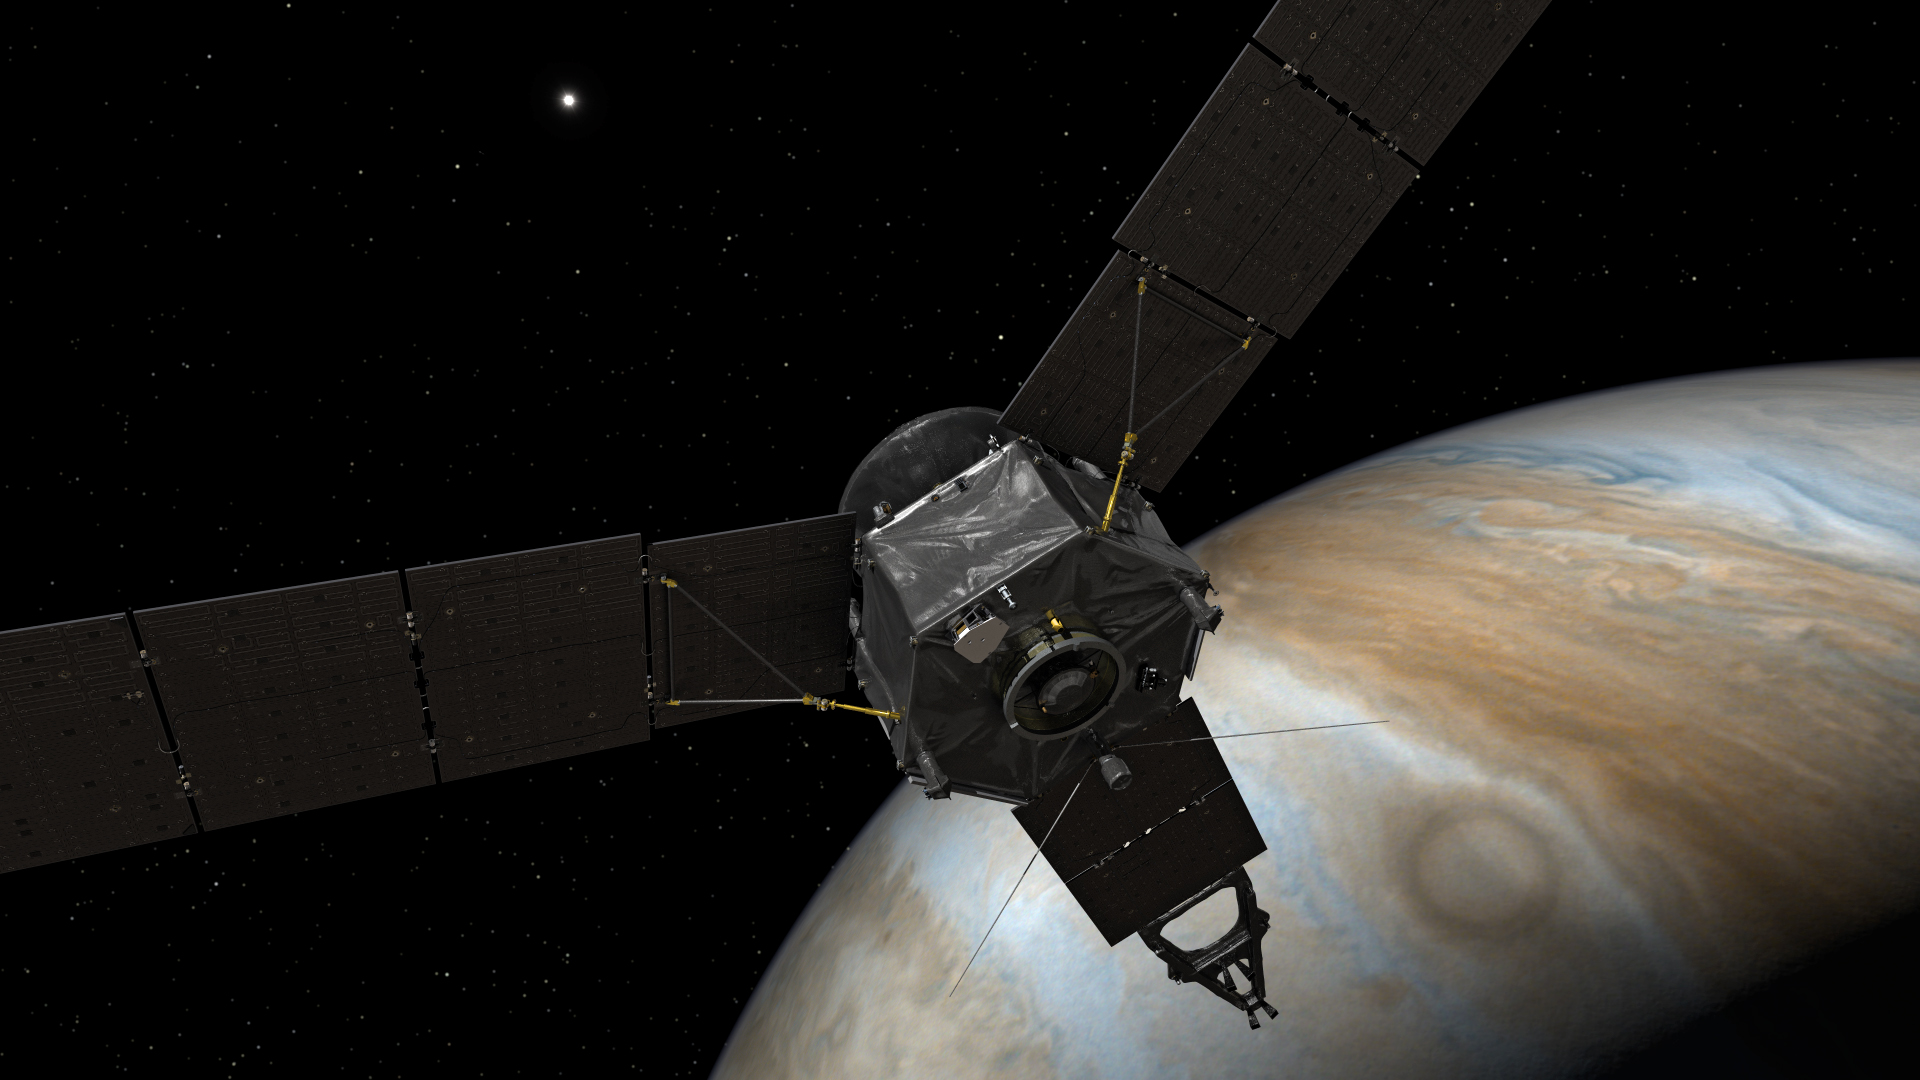 Wakey Wakey! Juno Spacecraft Turns on Science Gear at Jupiter